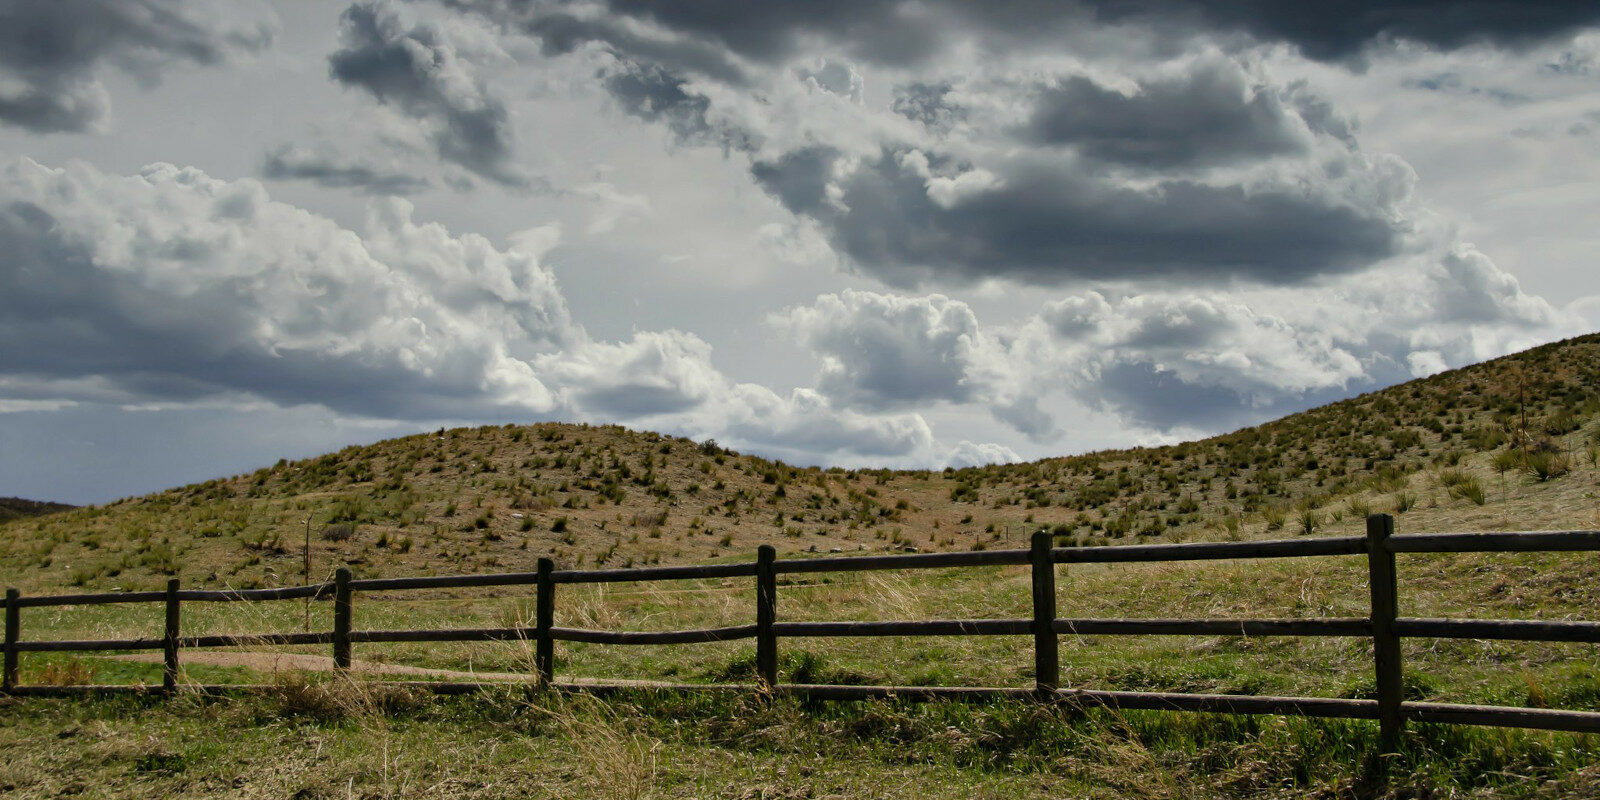 Image of the Bluffs Regional Park in Lone Tree, Colorado